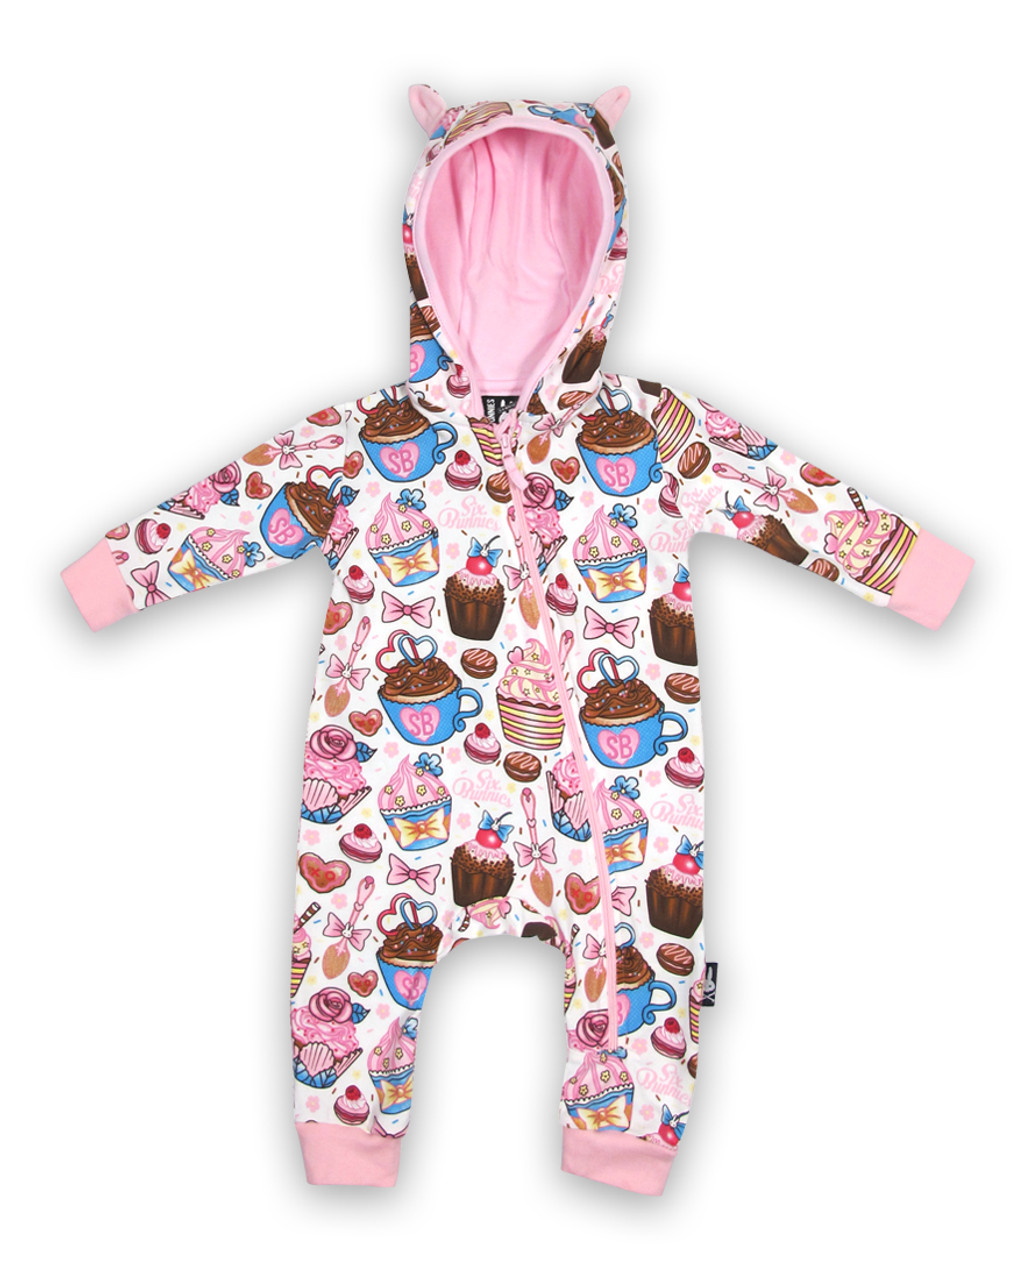 52472a82839 Six Bunnies Cupcakes Baby Playsuit Romper